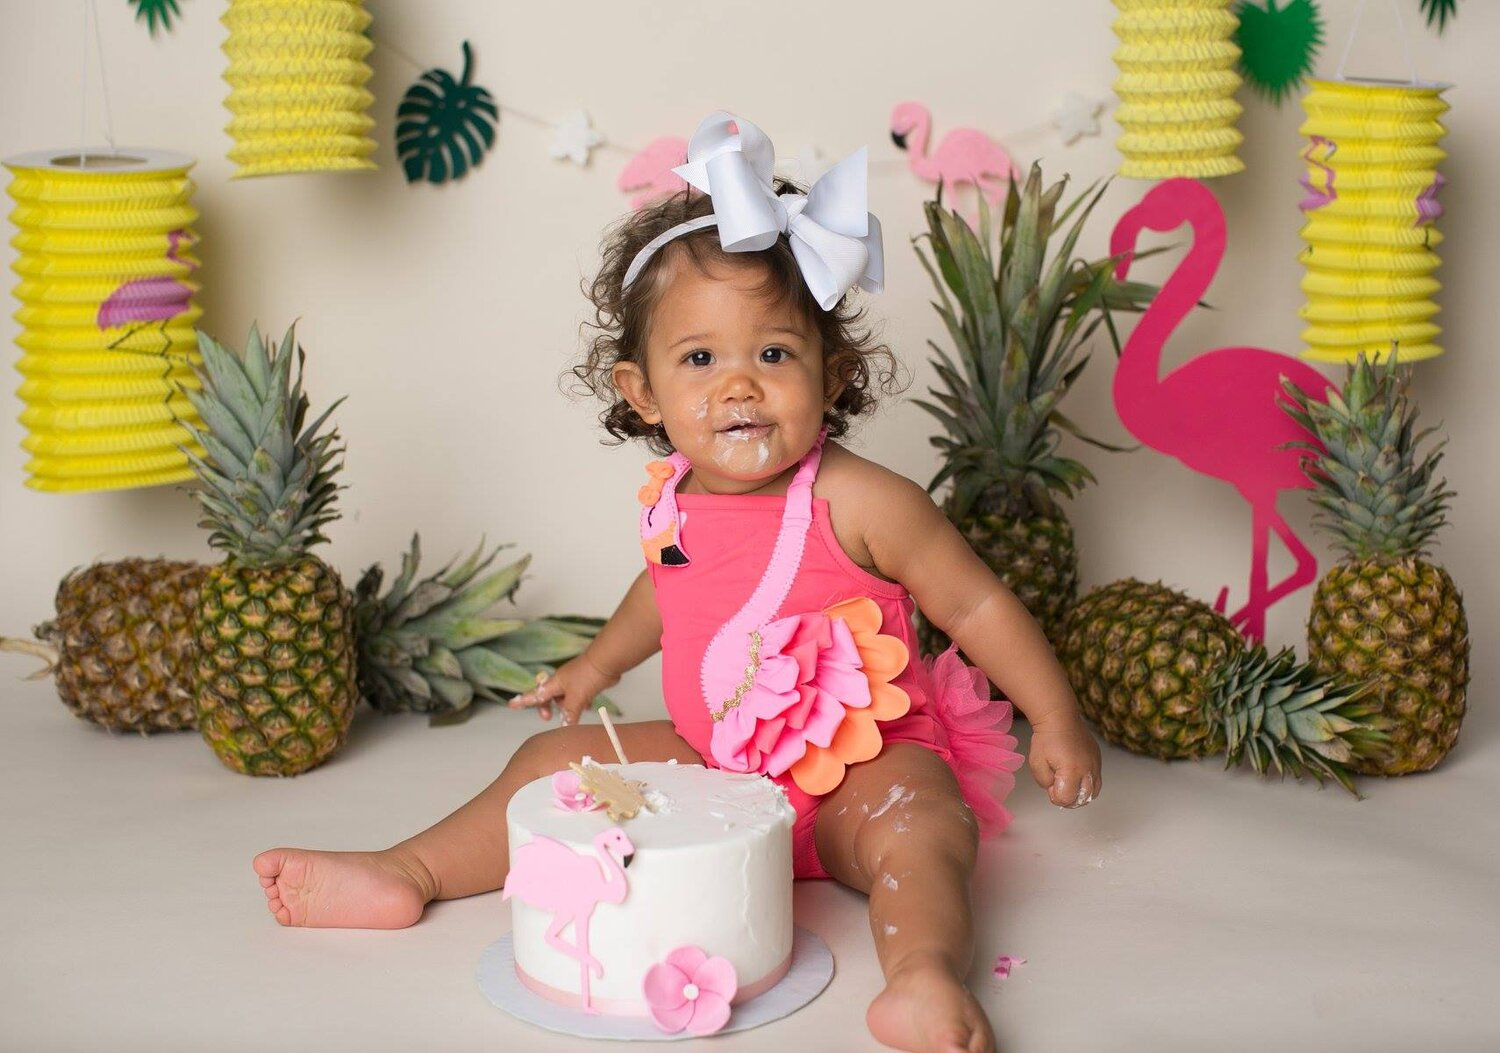 tiki-tropical-cake-smash-san-antonio-texas-lytle-photoshoot.jpg